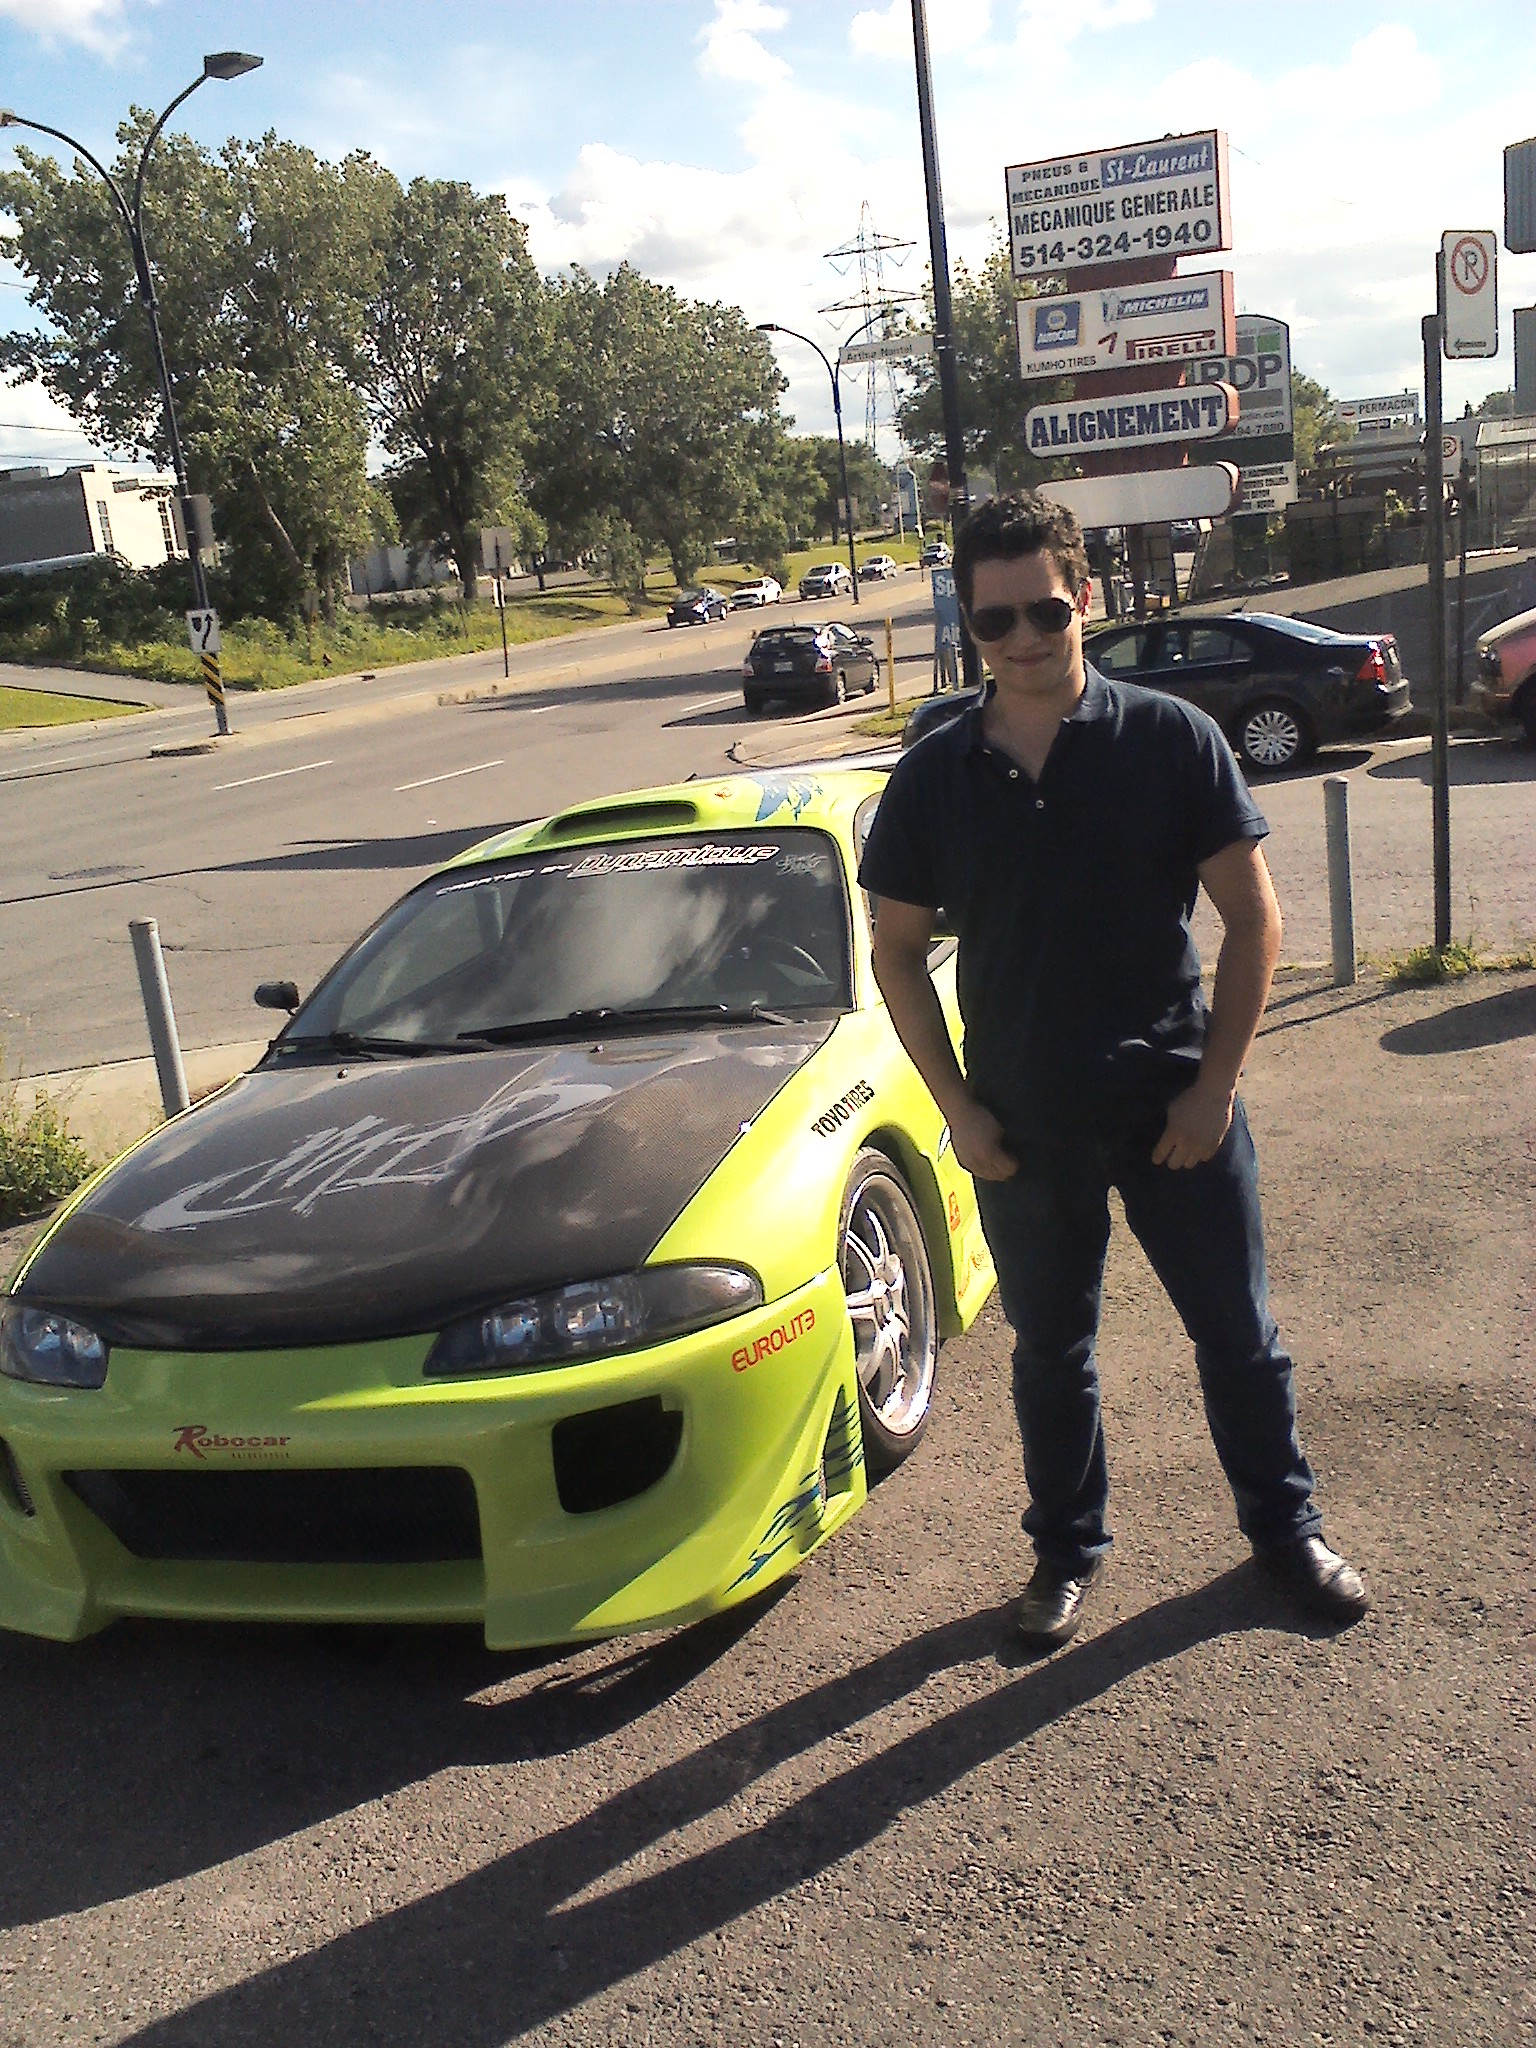 1995 mitsubishi eclipse gsx the fast and the furious 2001 such a